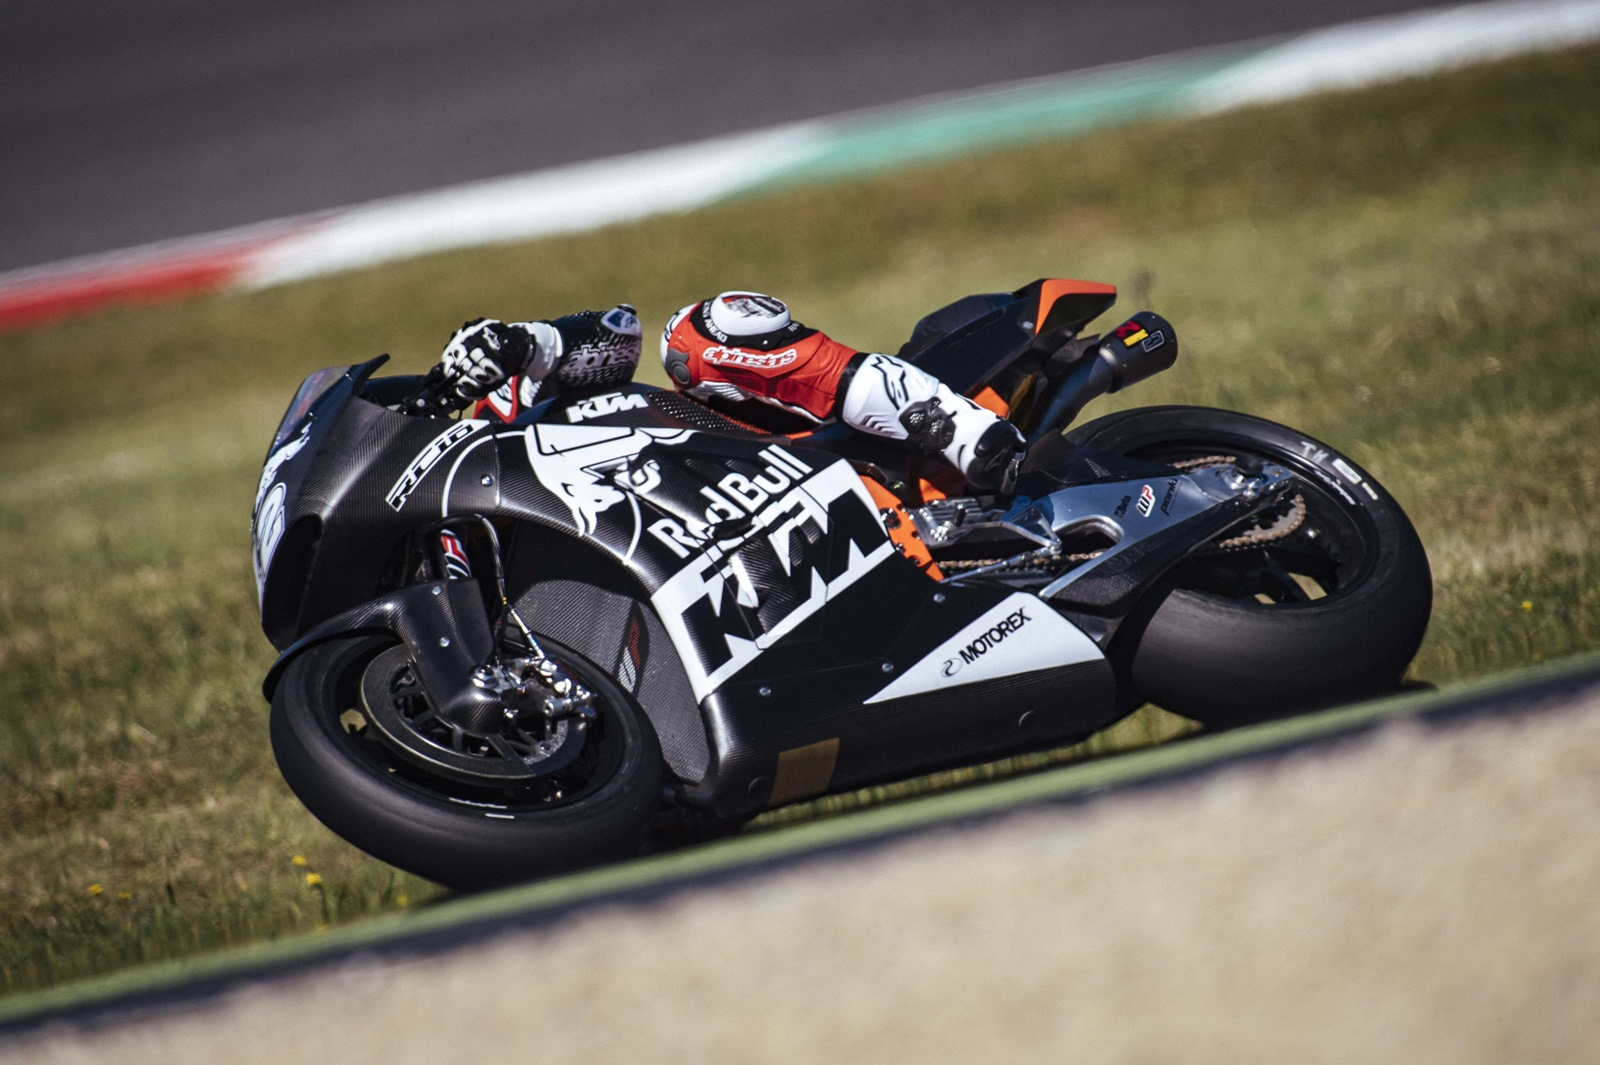 KTM RC16 MotoGP bike